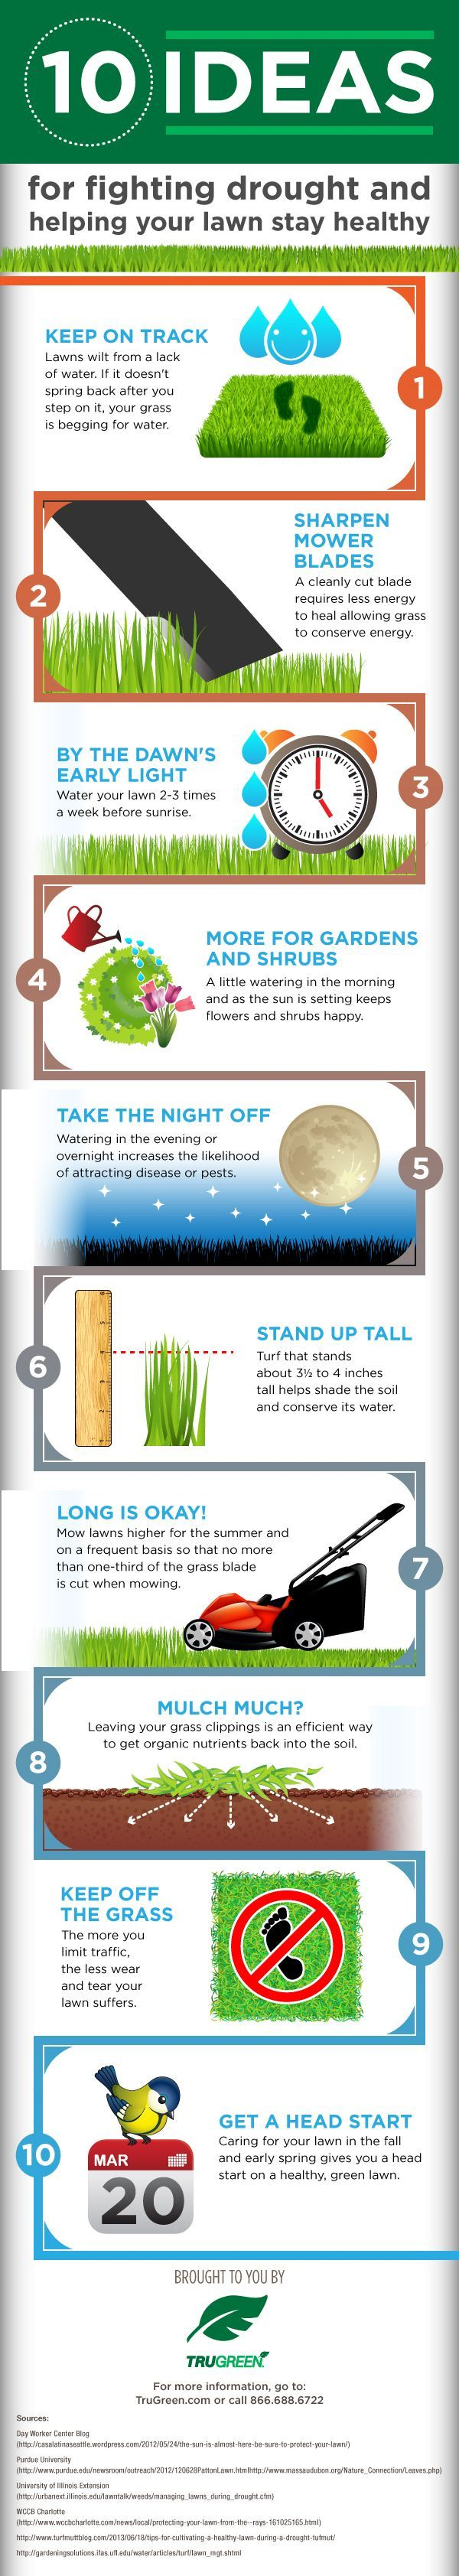 Lawn care advertising ideas - Best 25 Lawn Mowing Business Ideas Only On Pinterest Lawn Service Mowing Grass And Lawn Fertilizer Service